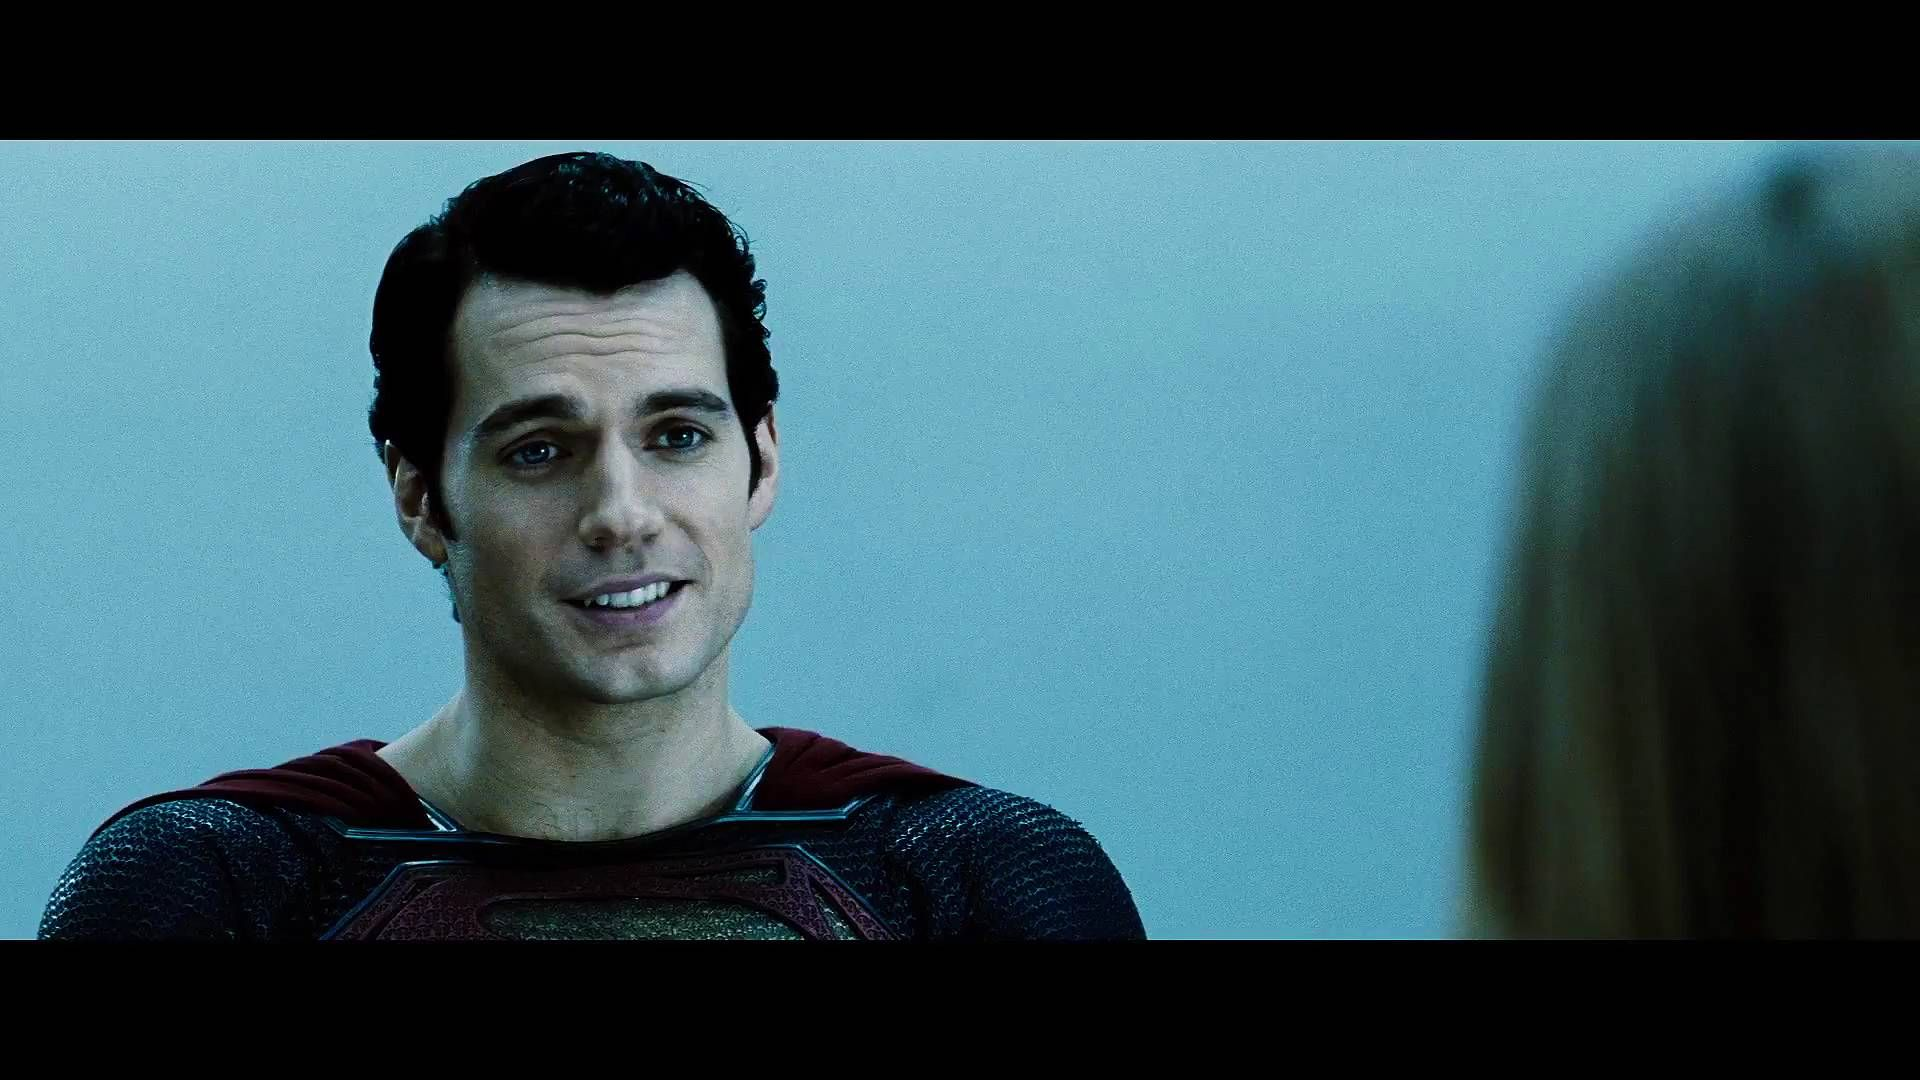 Checkout 40 New Images From Zack Snyder's Man of Steel